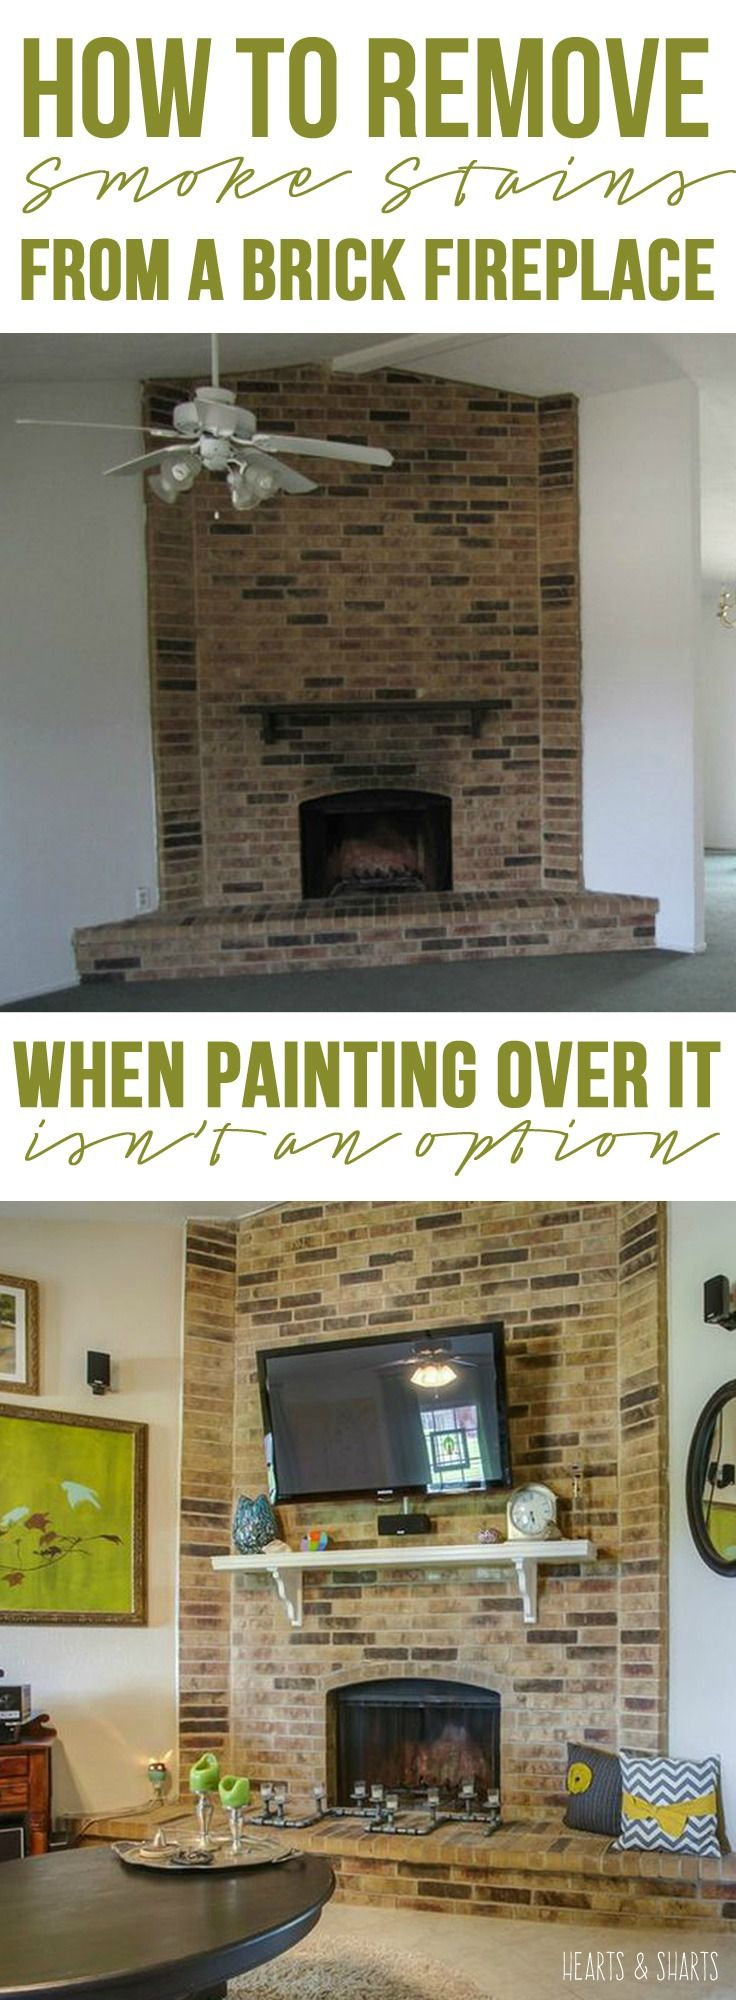 How to Remove Smoke Stains from a Brick Fireplace Surround - 17 Best Ideas About Cleaning Brick Fireplaces On Pinterest Brick